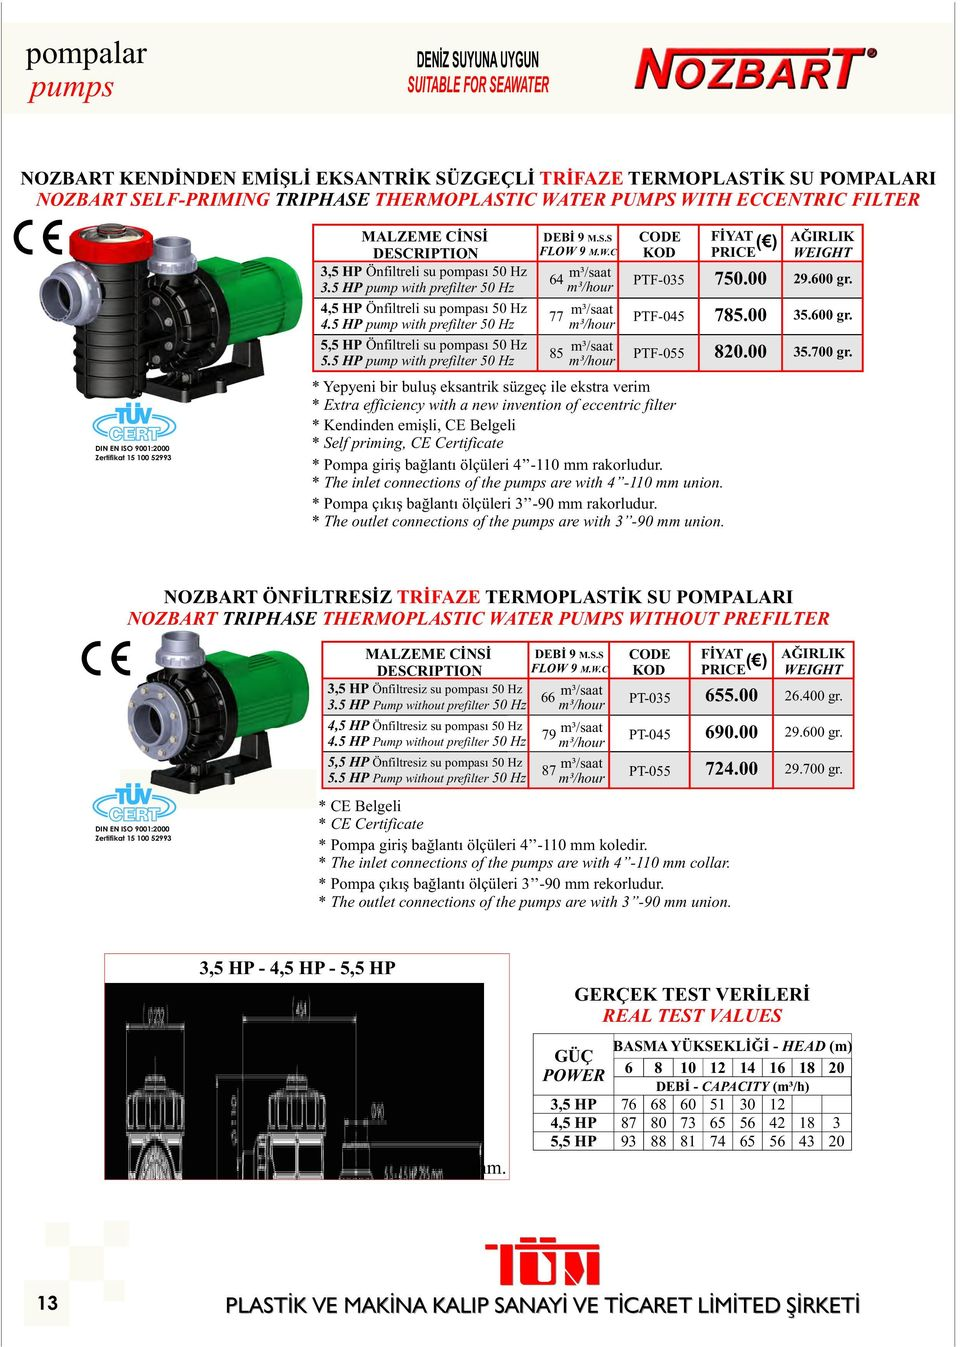 5 HP pump with prefilter 5 Hz DEBİ 9 M.S.S FLOW